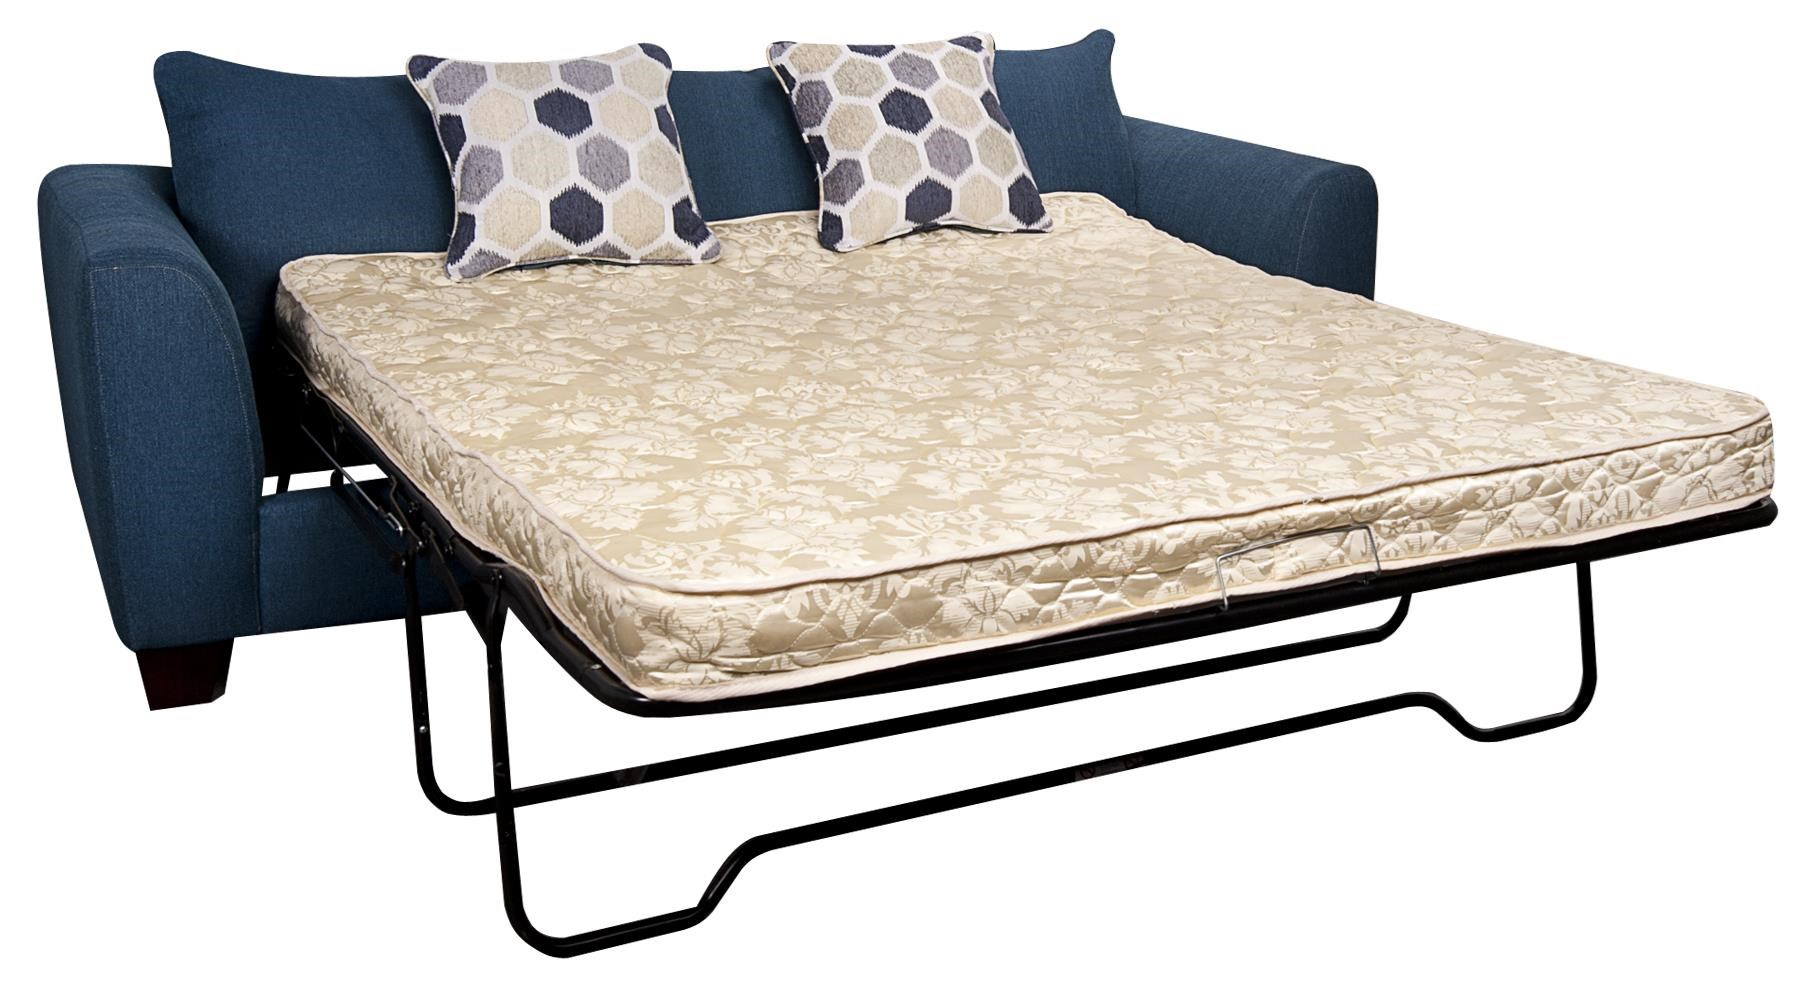 Morris Home Furnishings Remedy Remedy Queen Sleeper - Item Number: 623779434